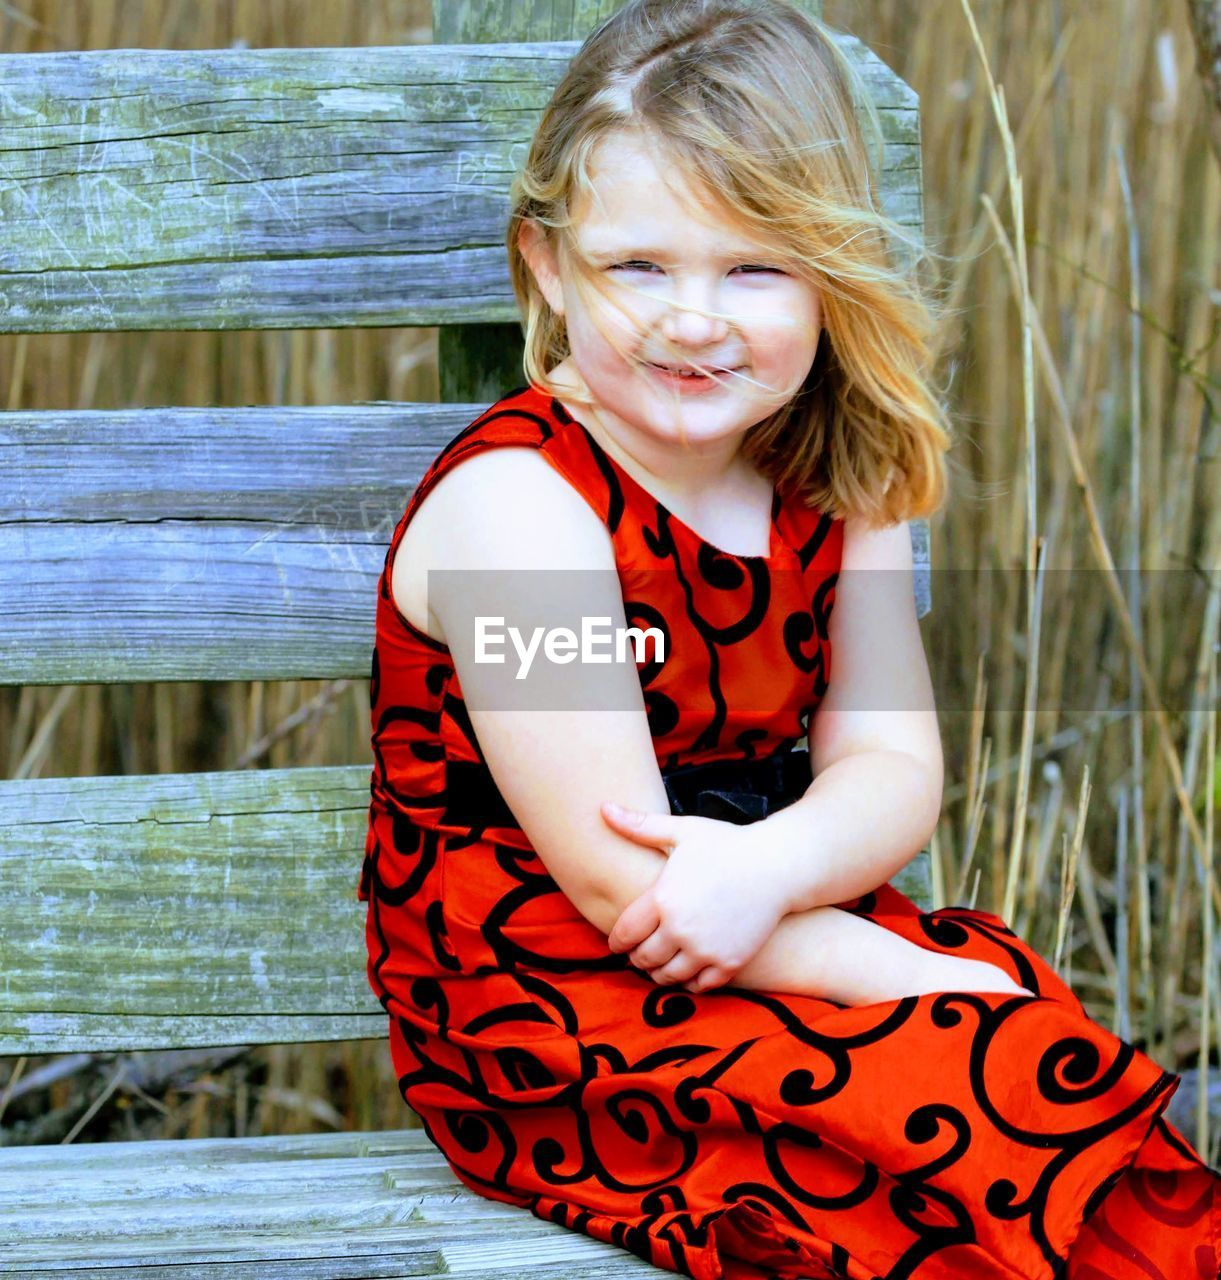 child, childhood, one person, real people, girls, females, smiling, women, blond hair, lifestyles, three quarter length, leisure activity, day, casual clothing, innocence, sitting, emotion, front view, hair, outdoors, hairstyle